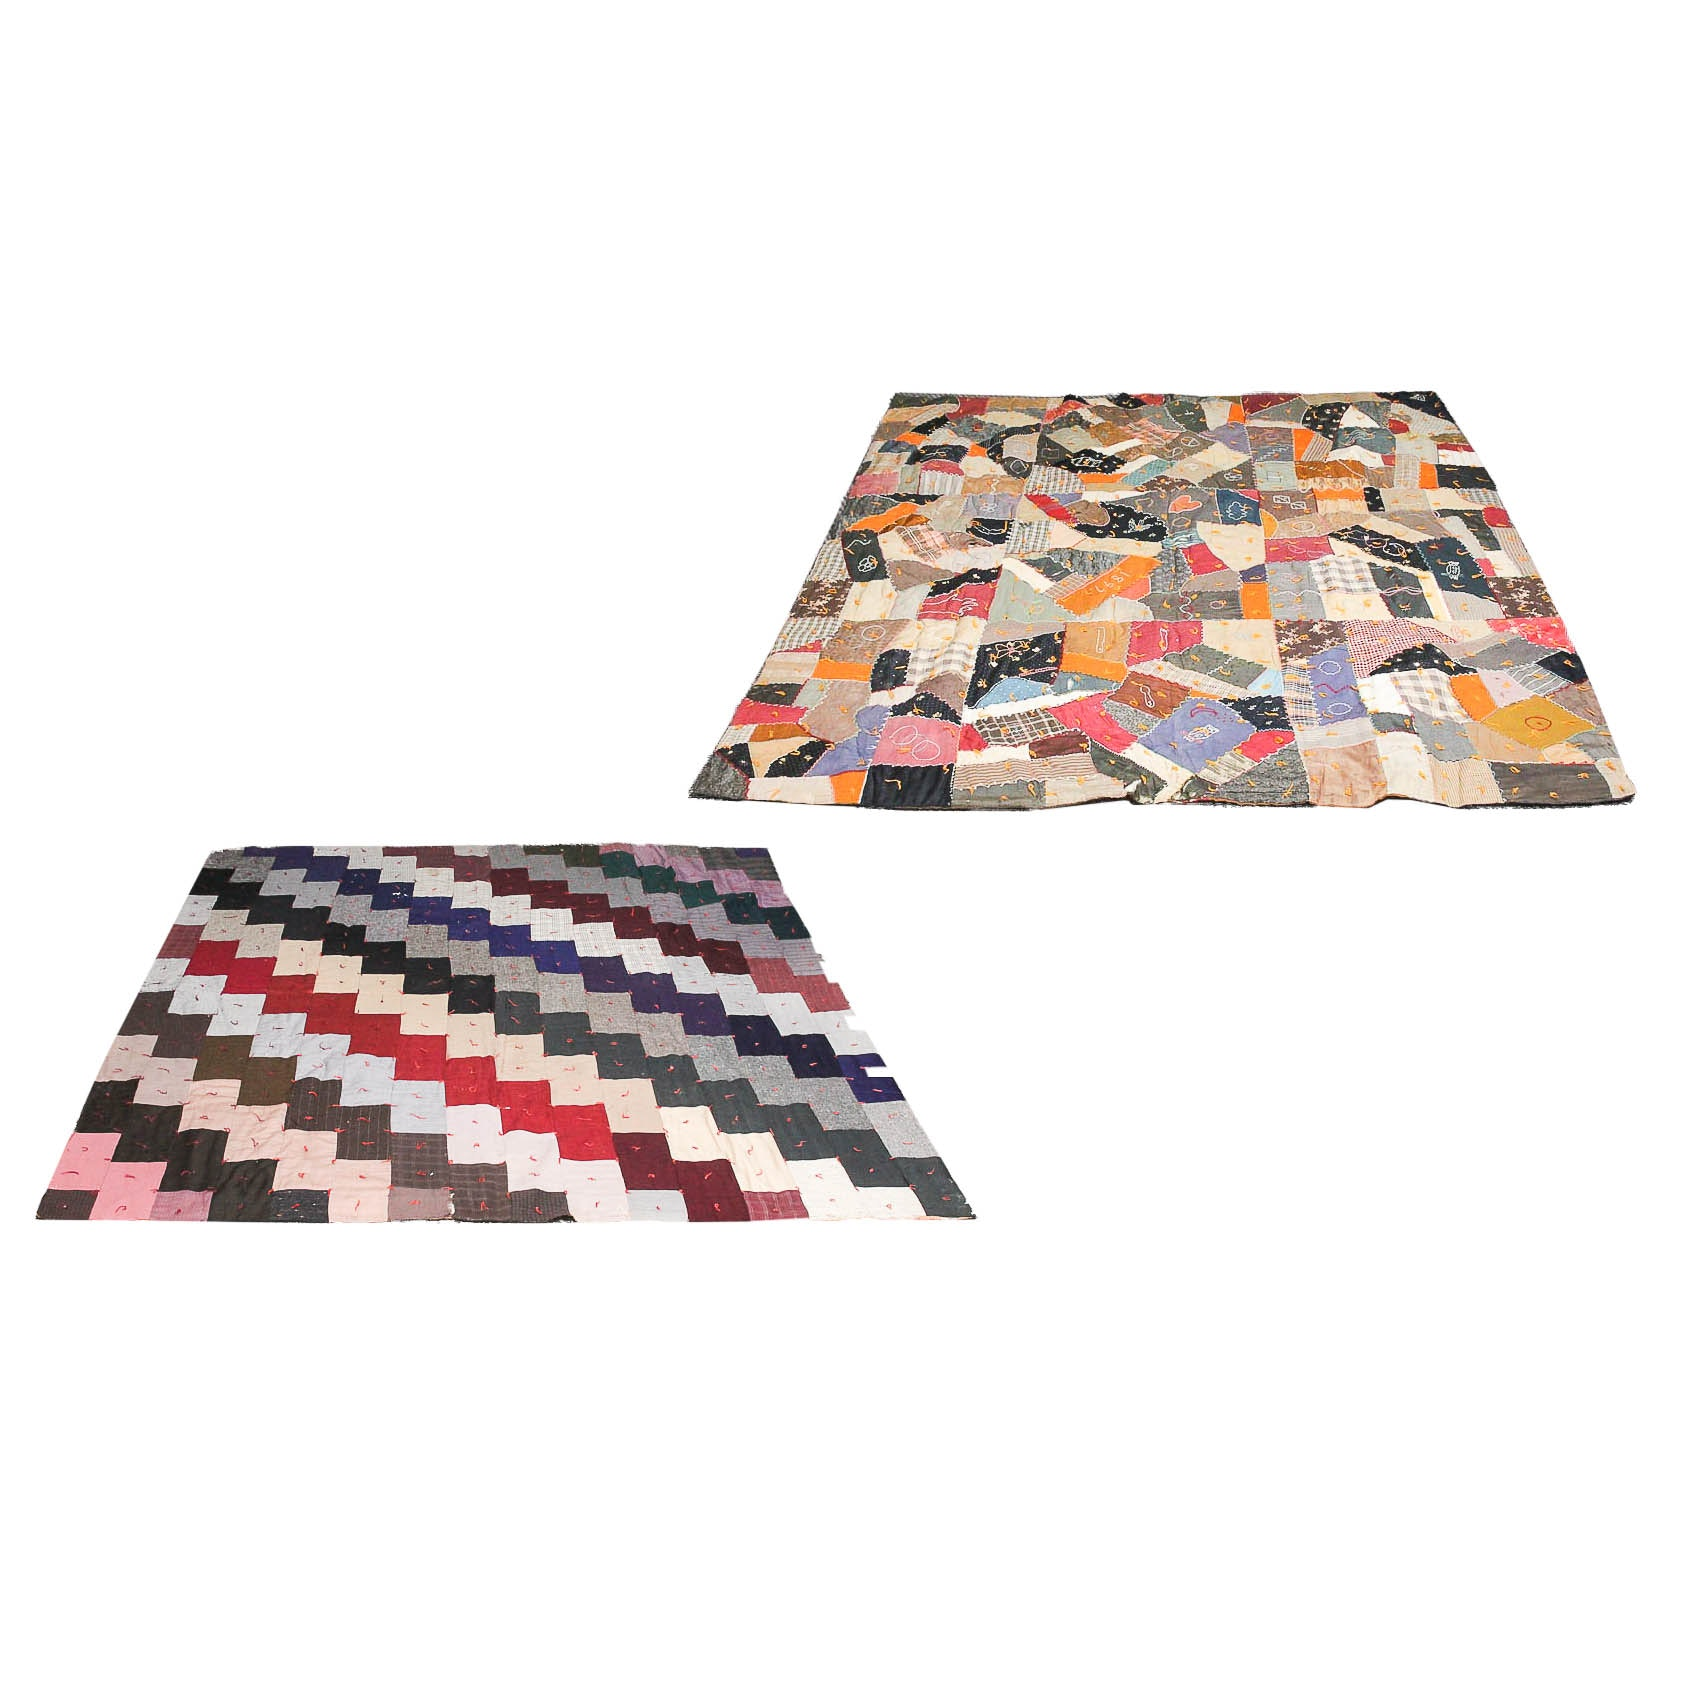 Two Vintage Patchwork Quilts